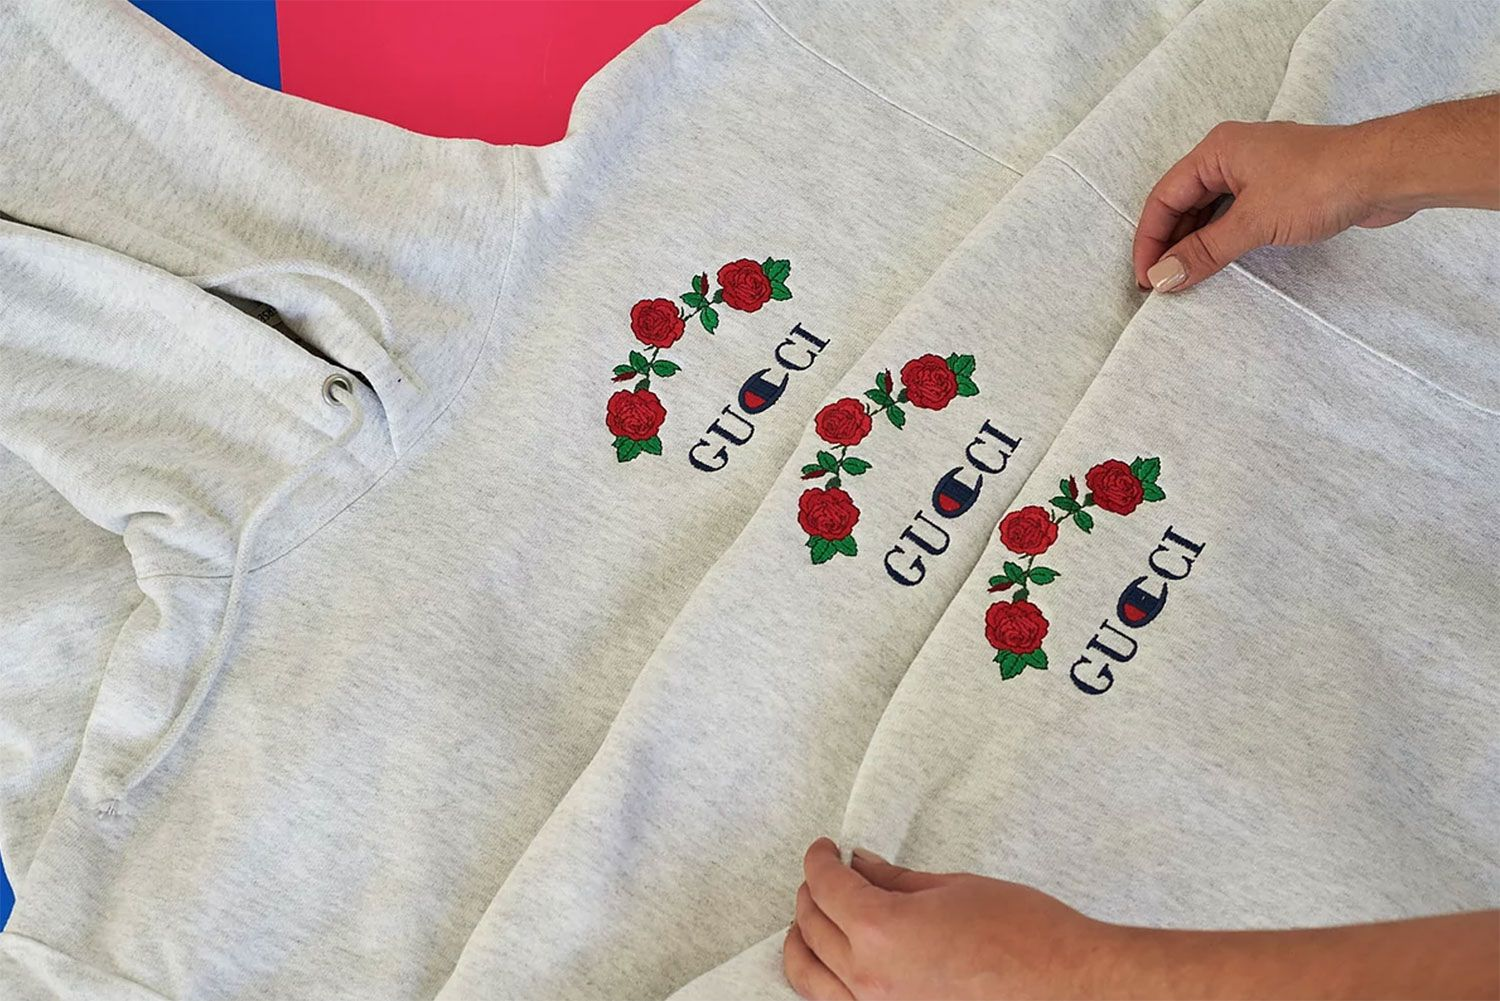 e501c331 Ava Nirui Finally Released Her Much Hyped GUCCI x Champion Bootleg Hoodie  #thatdope #sneakers #luxury #dope #fashion #trending